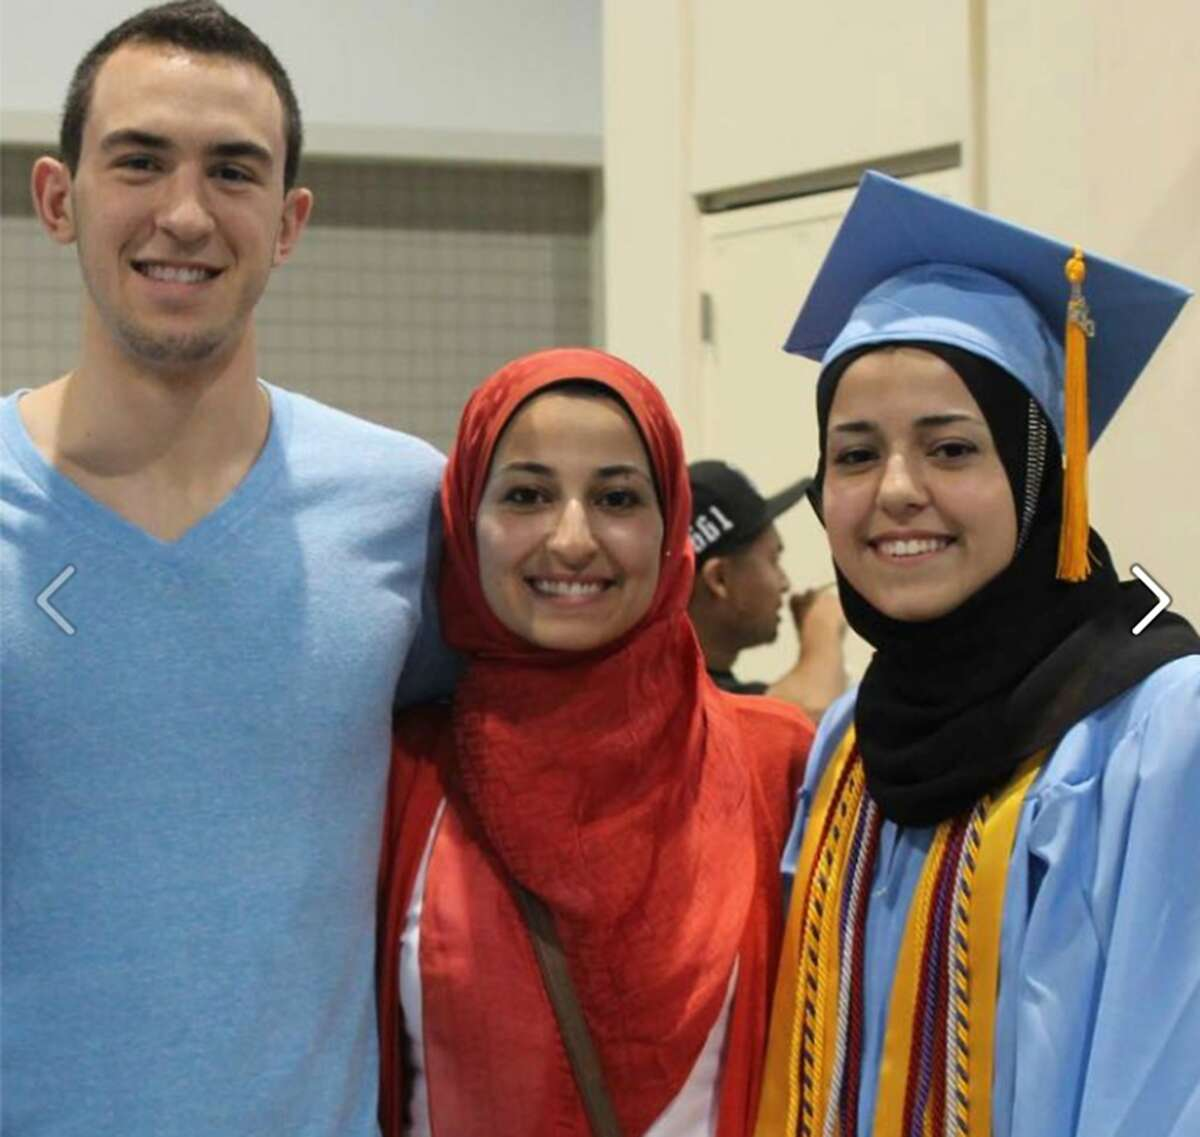 Deah Barakat, his wife, Yusor Mohammad Abu-Salha, 21, and her sister, Razan Mohammad Abu-Salha, were killed Tuesday, Feb. 10, 2015. The photo comes from a Facebook page created by friends of the trio. (Our Three Winners)